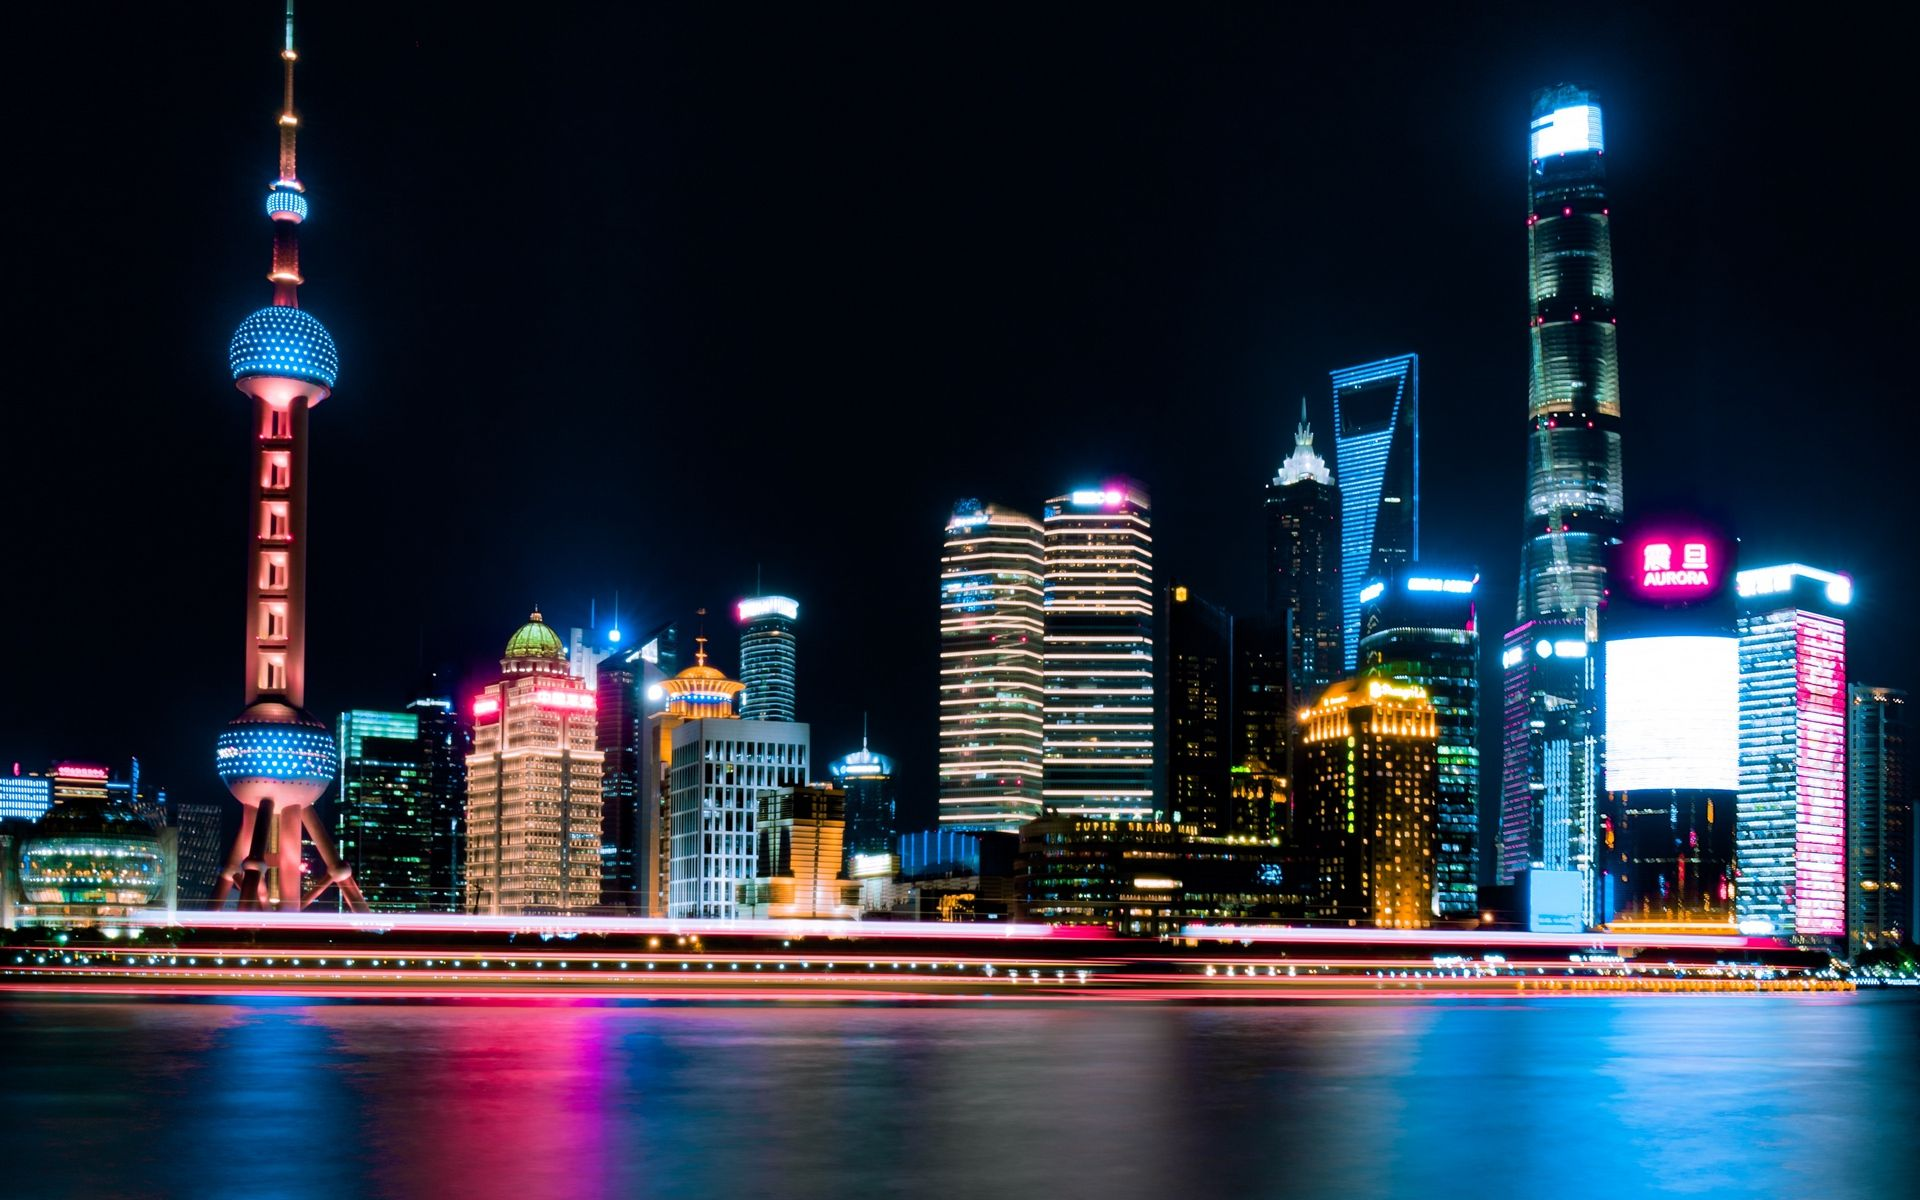 Shanghai China Weather Hd Wallpaper City Lights Wallpaper City Lights At Night Cityscape Wallpaper